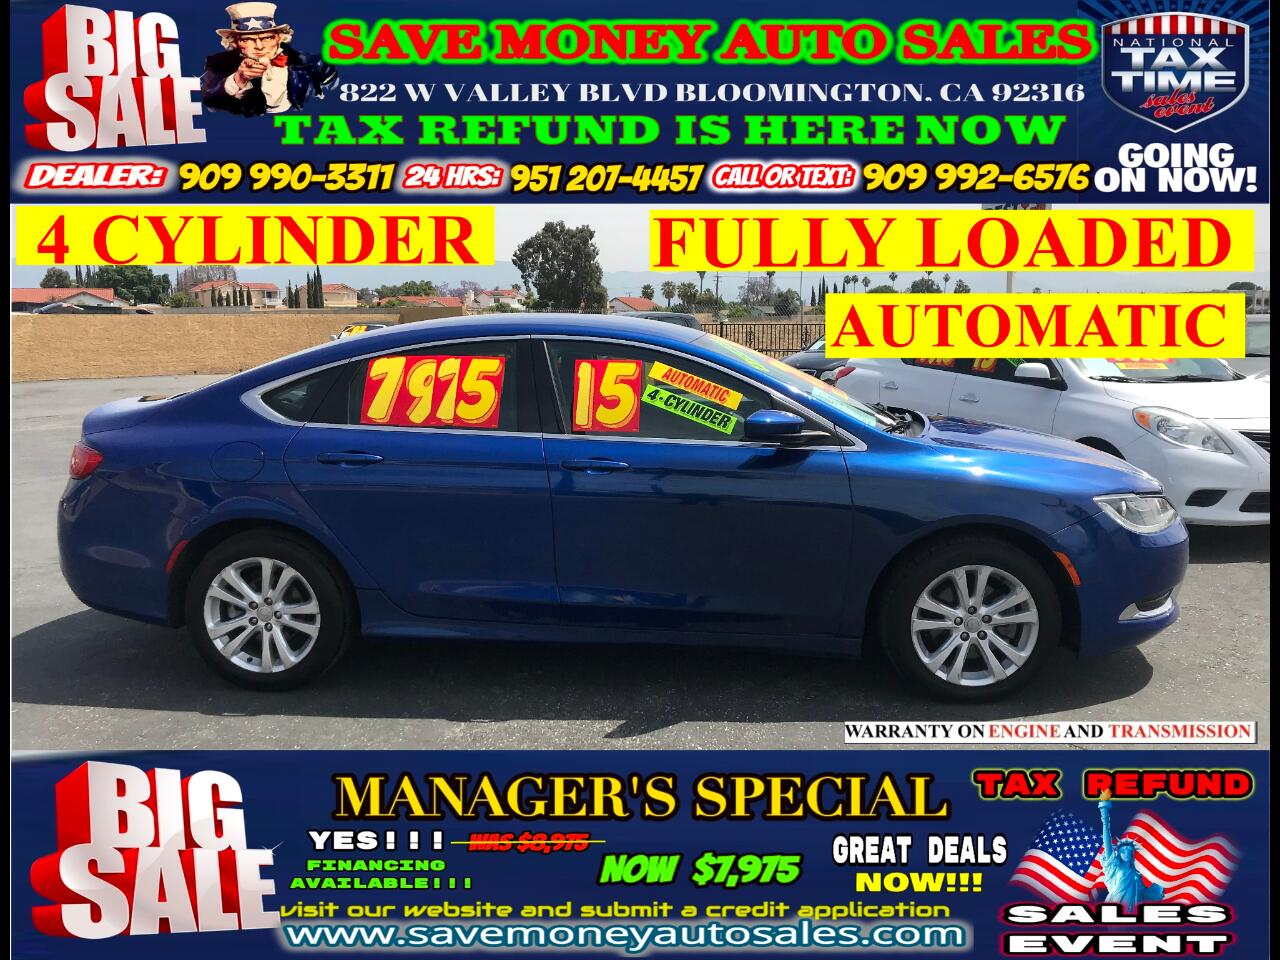 2015 Chrysler 200 LIMITED> 4-CYLINDER>FULLY LOADED>AUTOMATIC